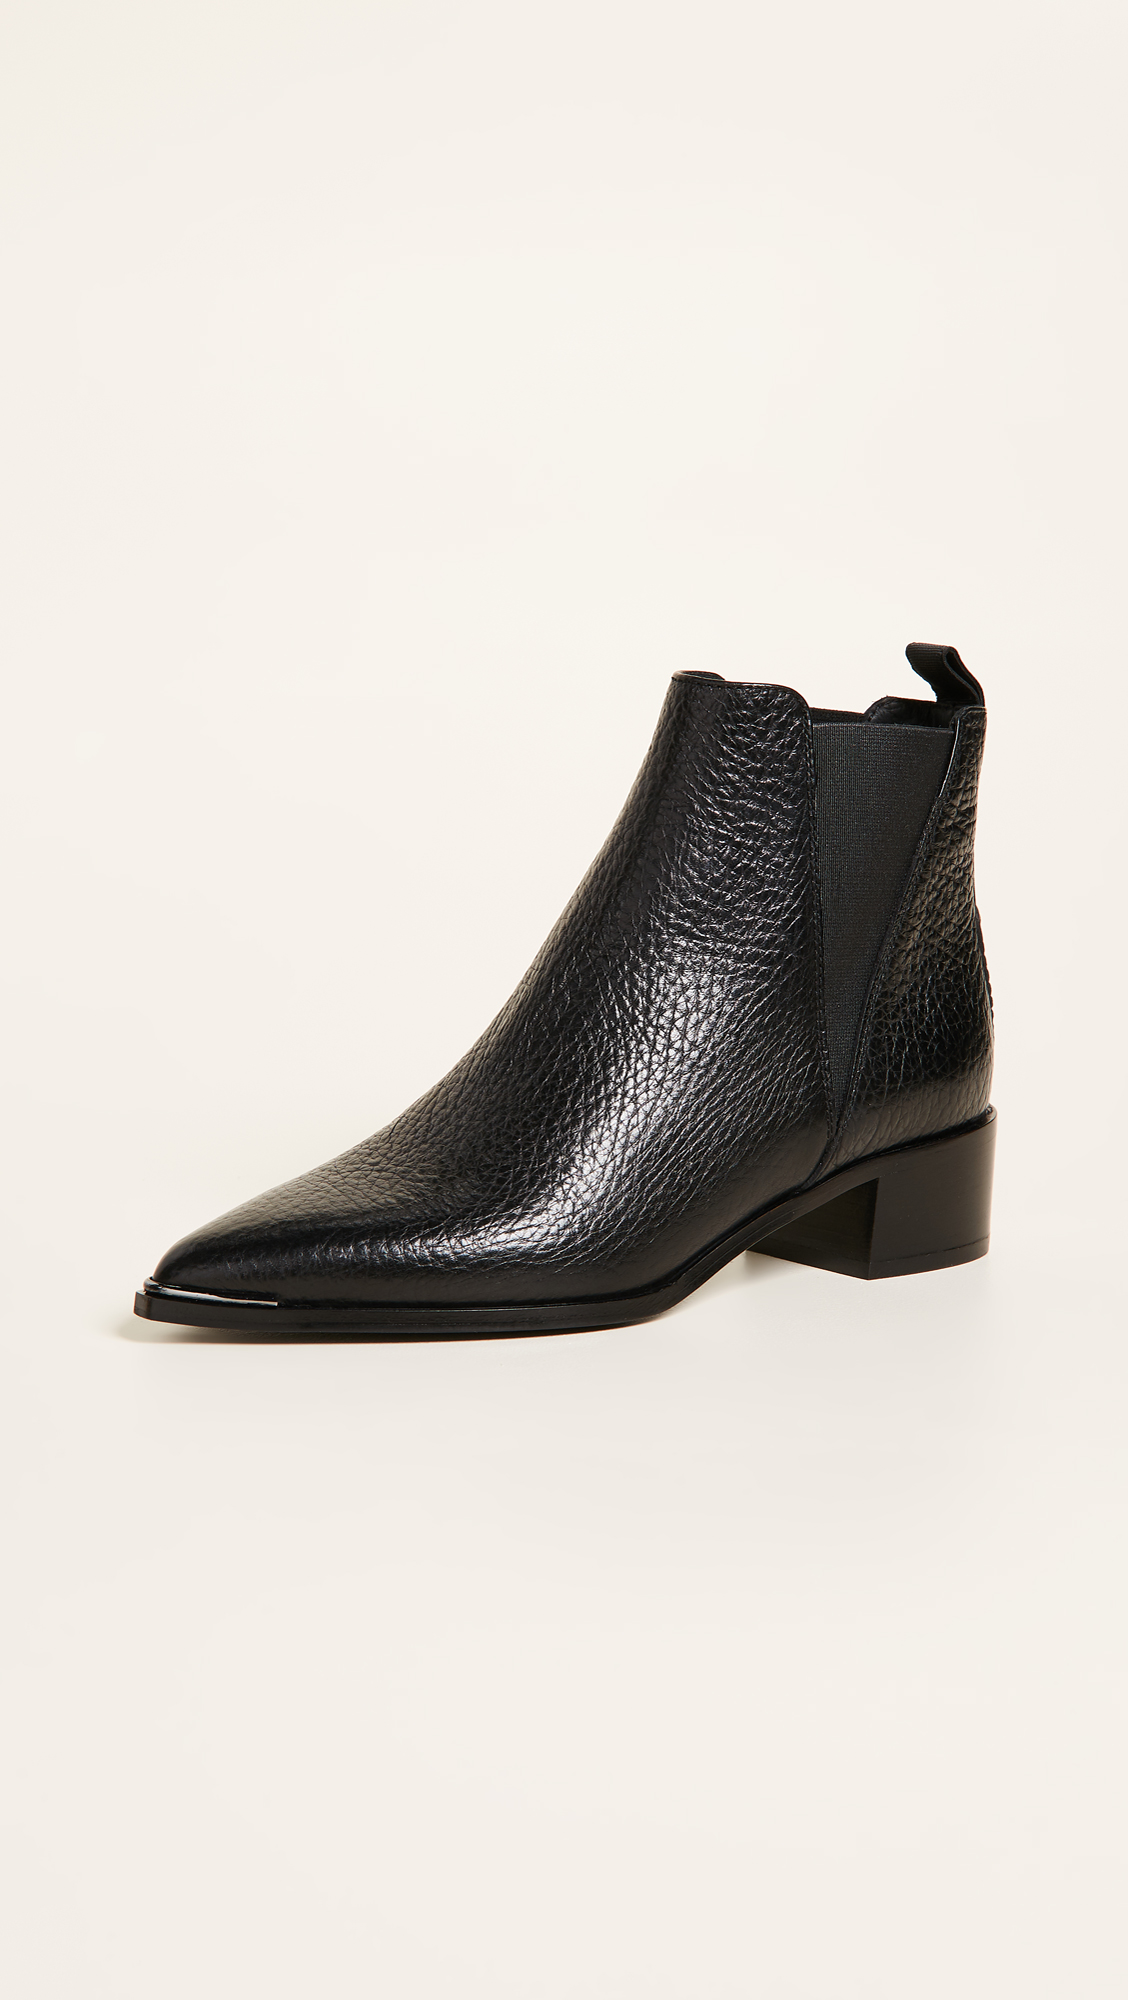 acne boots, ankle boots